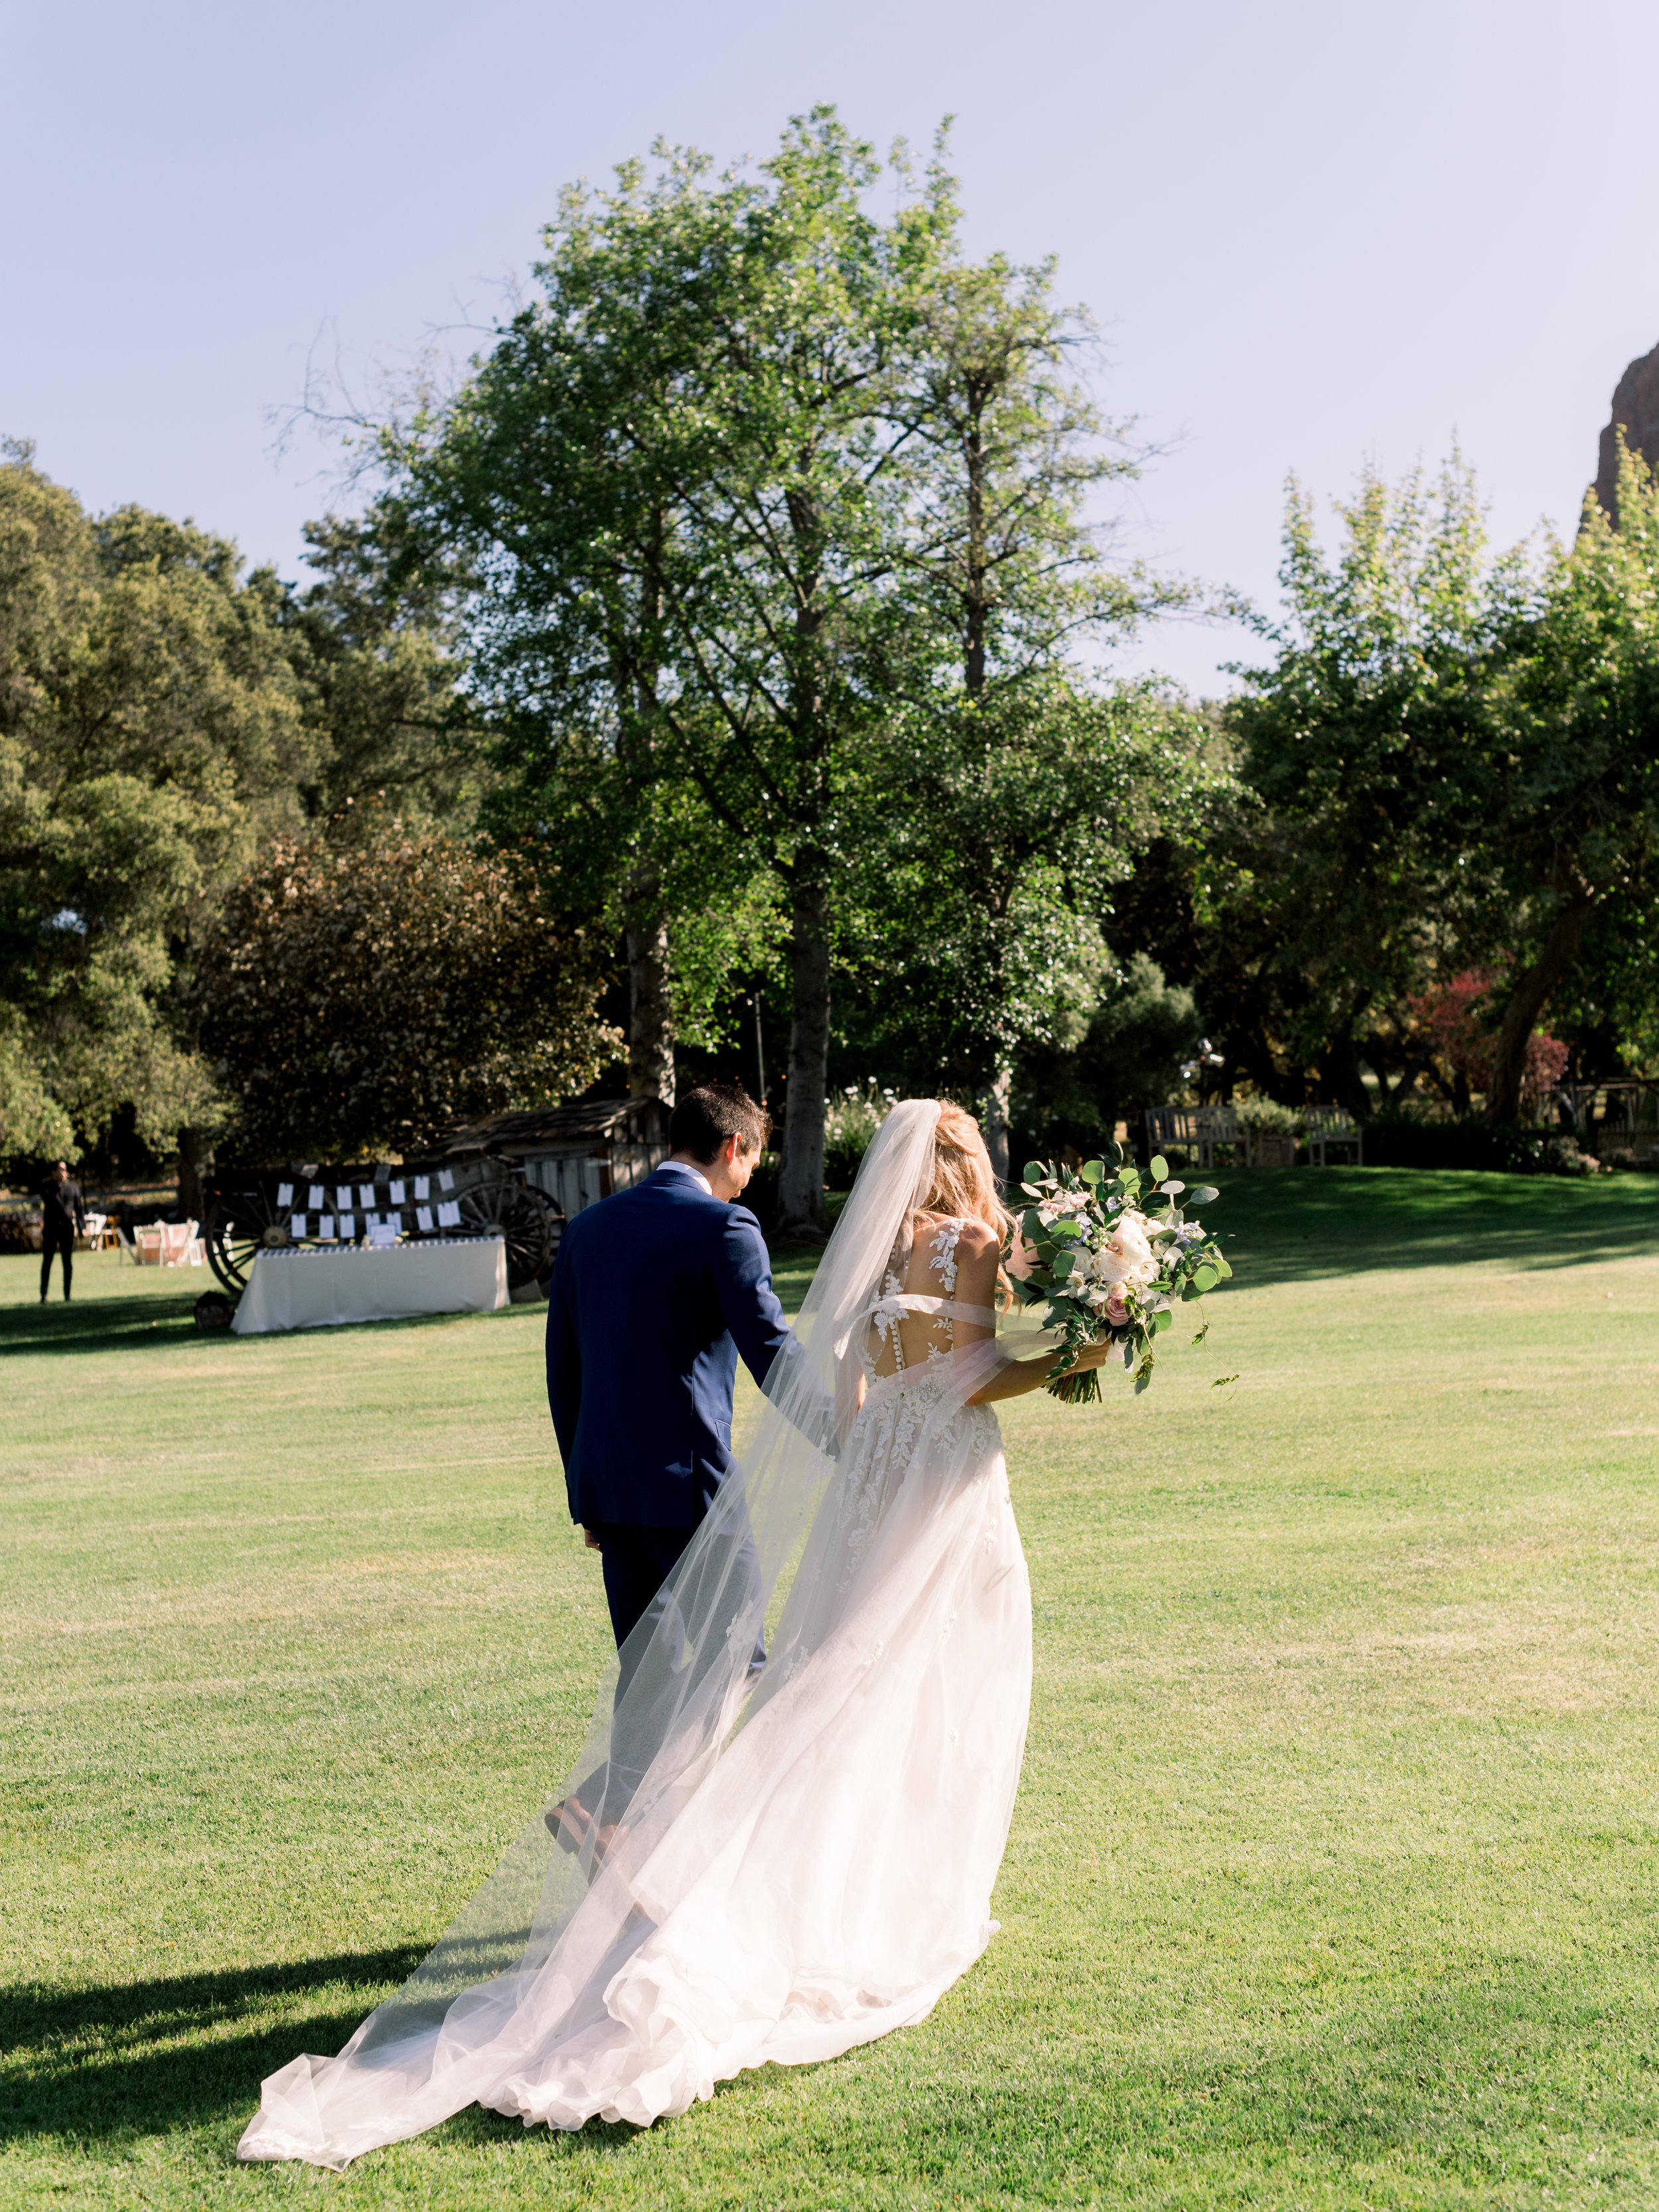 bride-and-groom-walk-hand-in-hand-after-the-ceremony.jpg